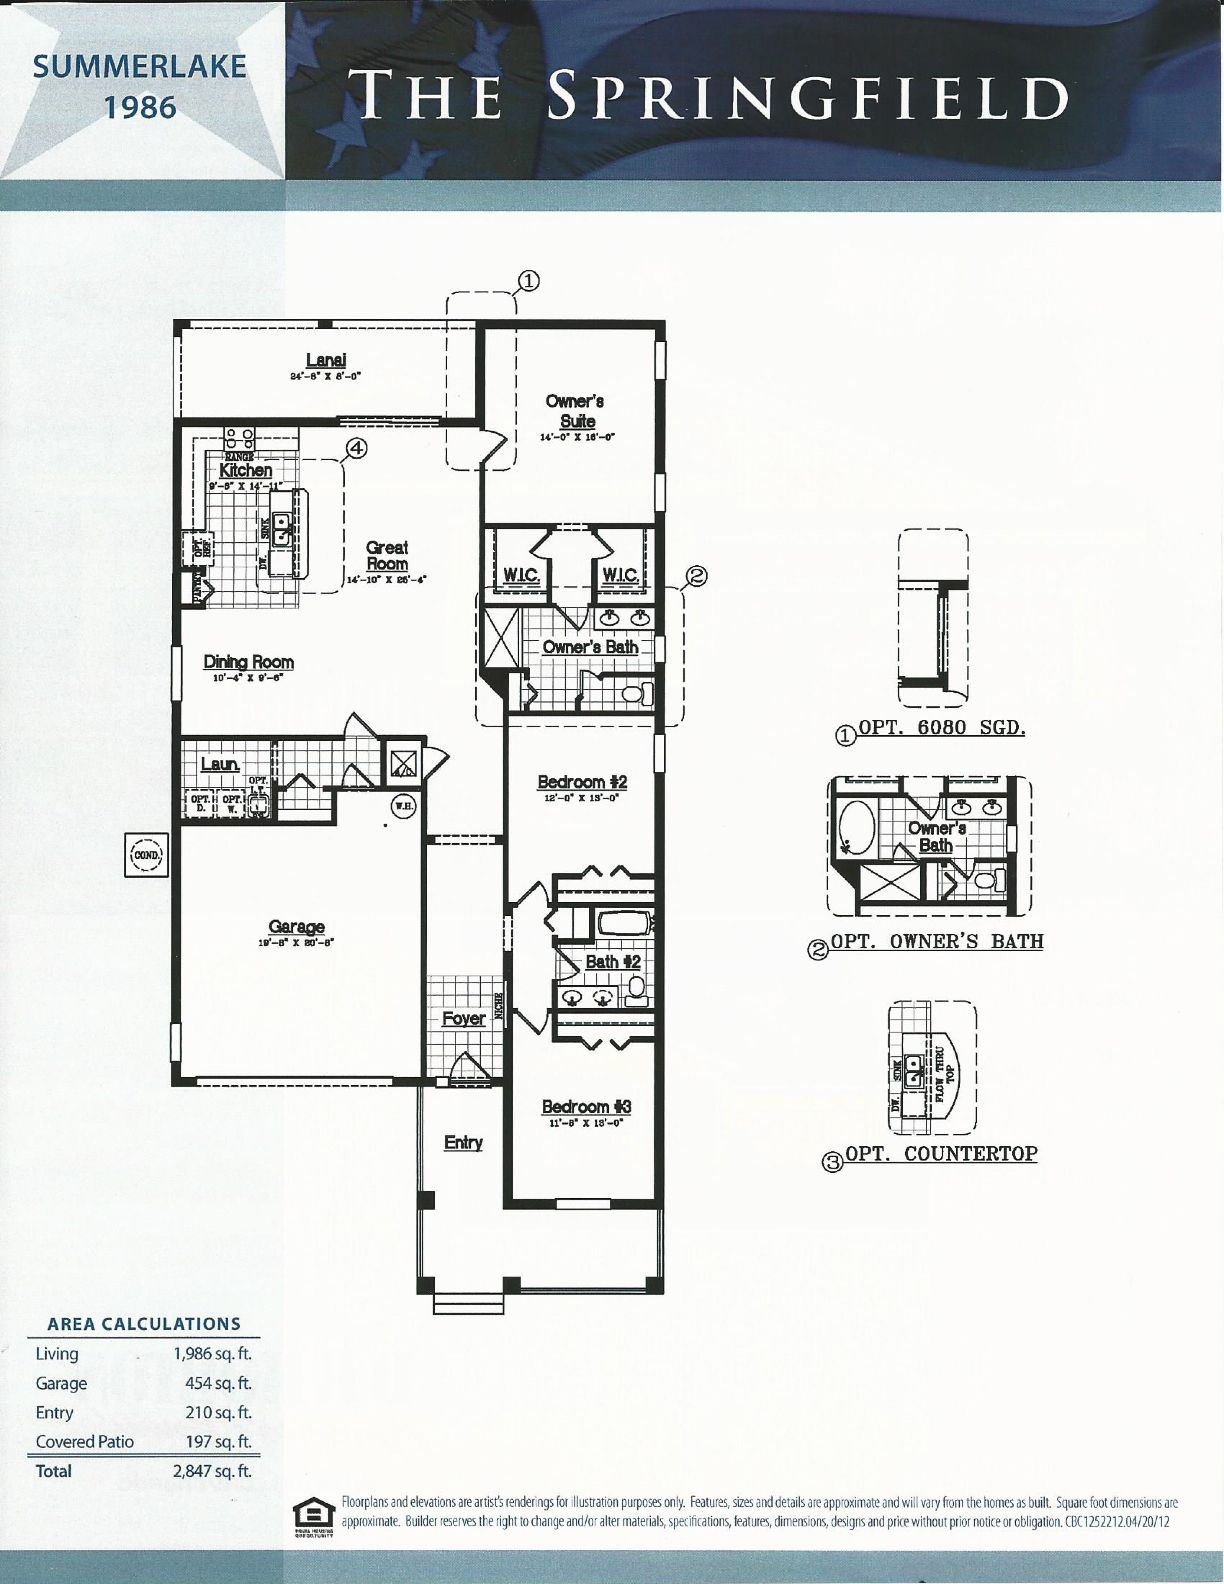 Summerlake Dr Horton Homes Springfield Floor Plan In